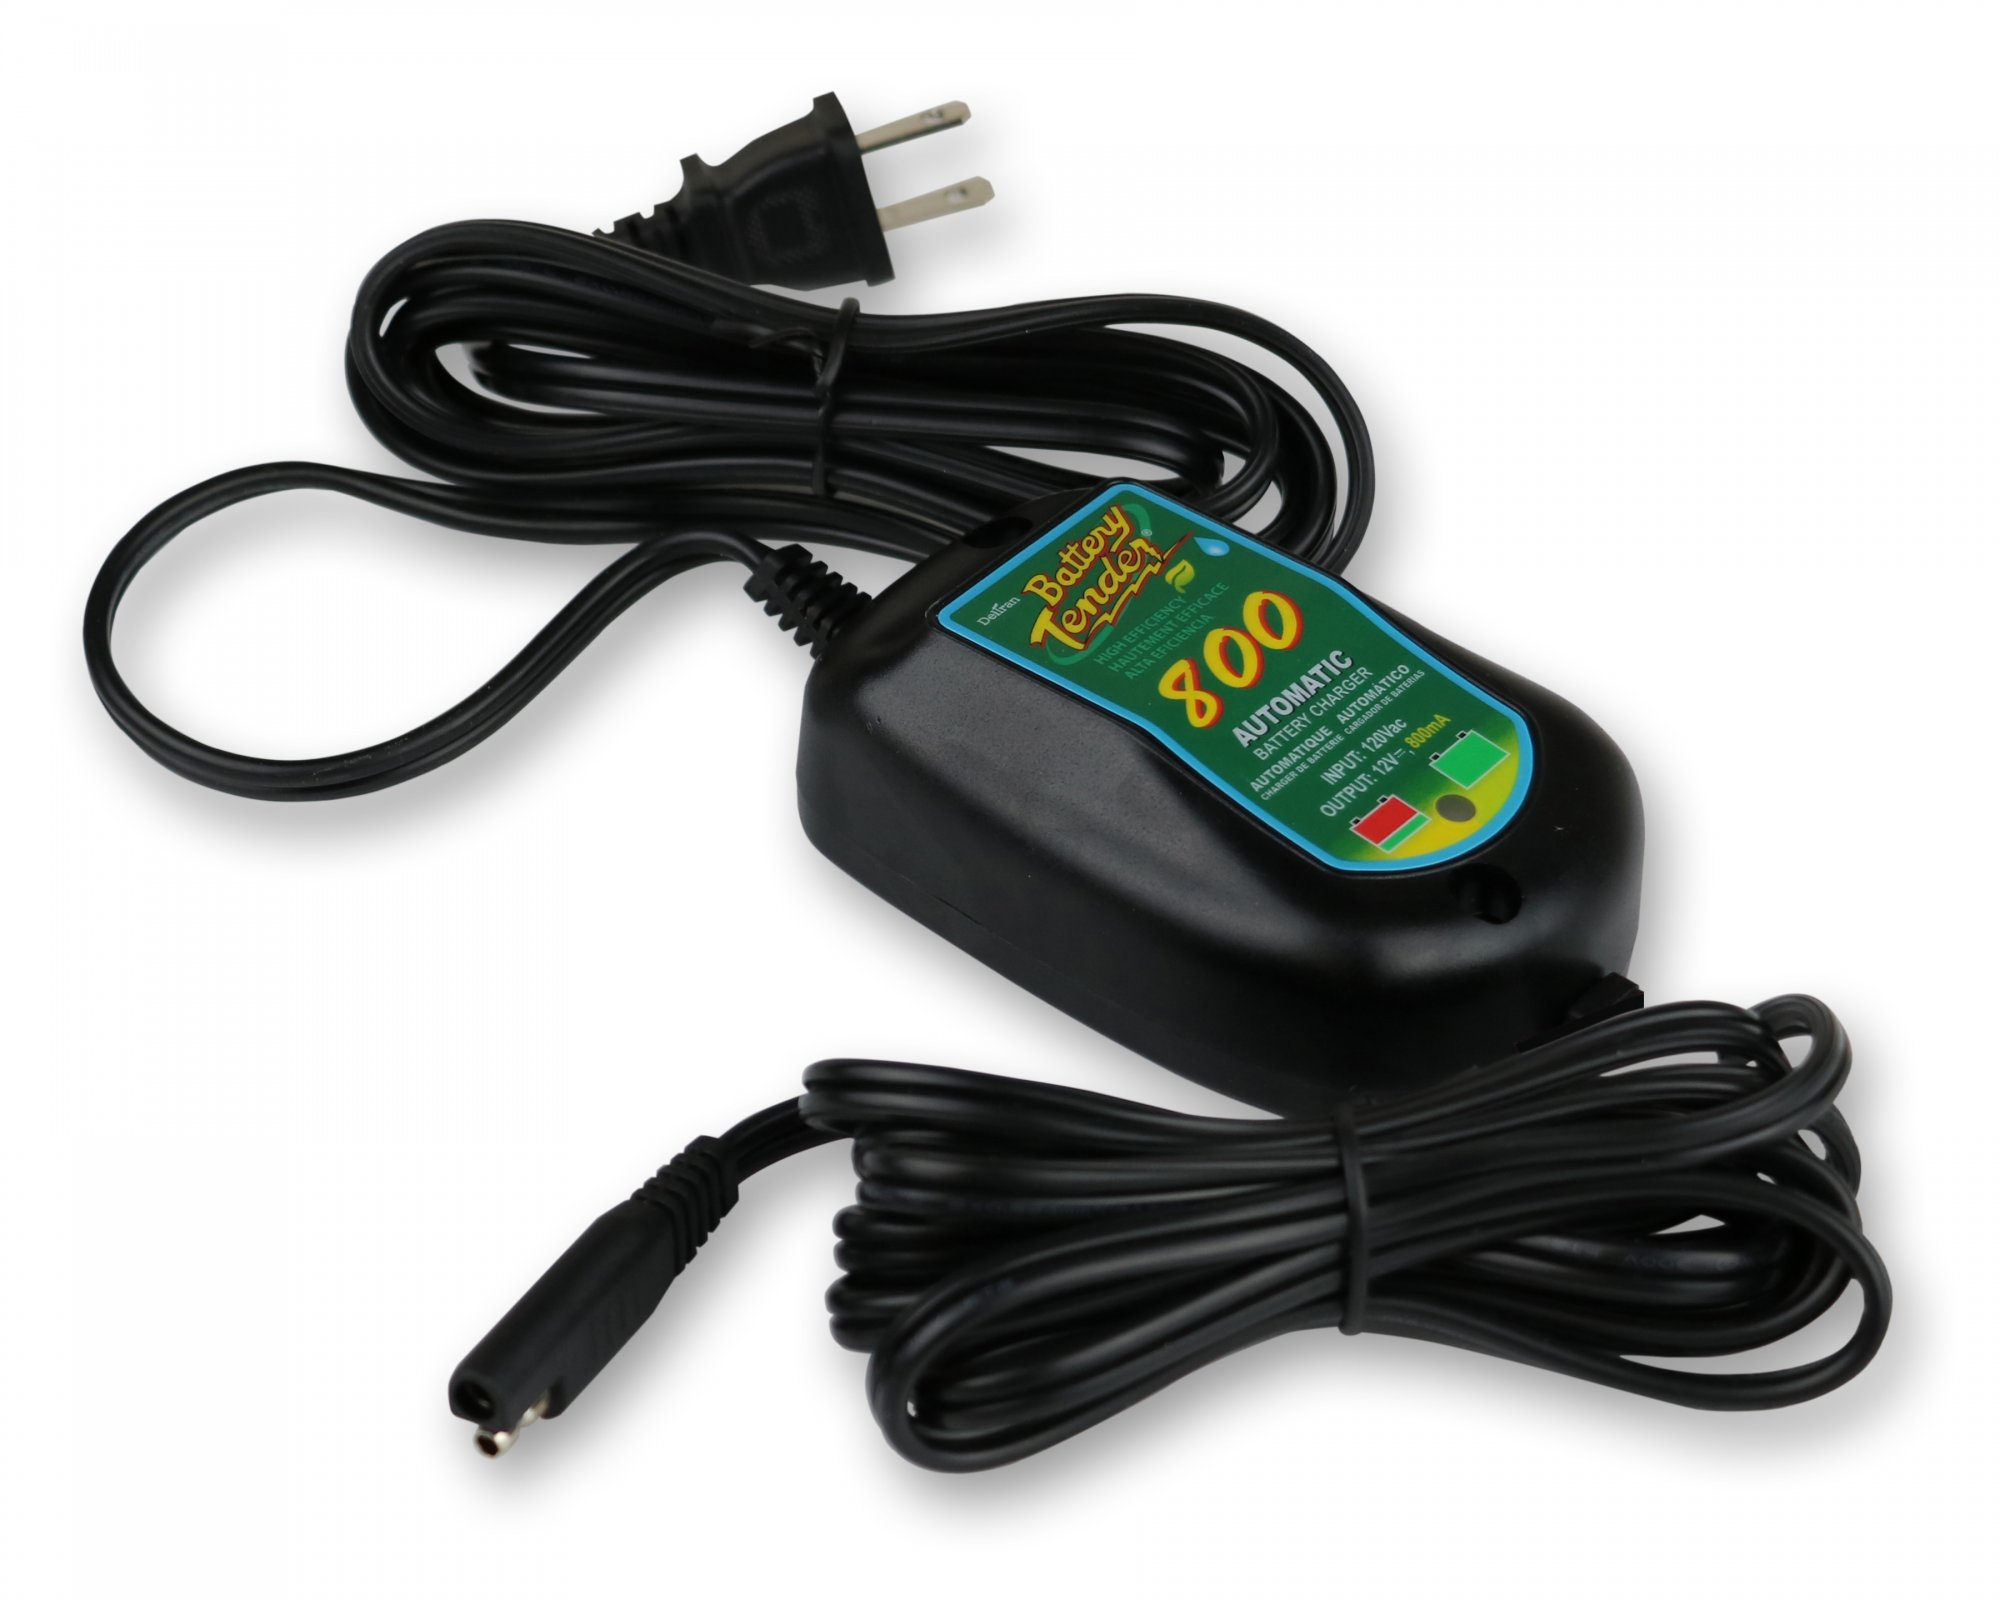 Battery Charger for Power Models (BC-15)